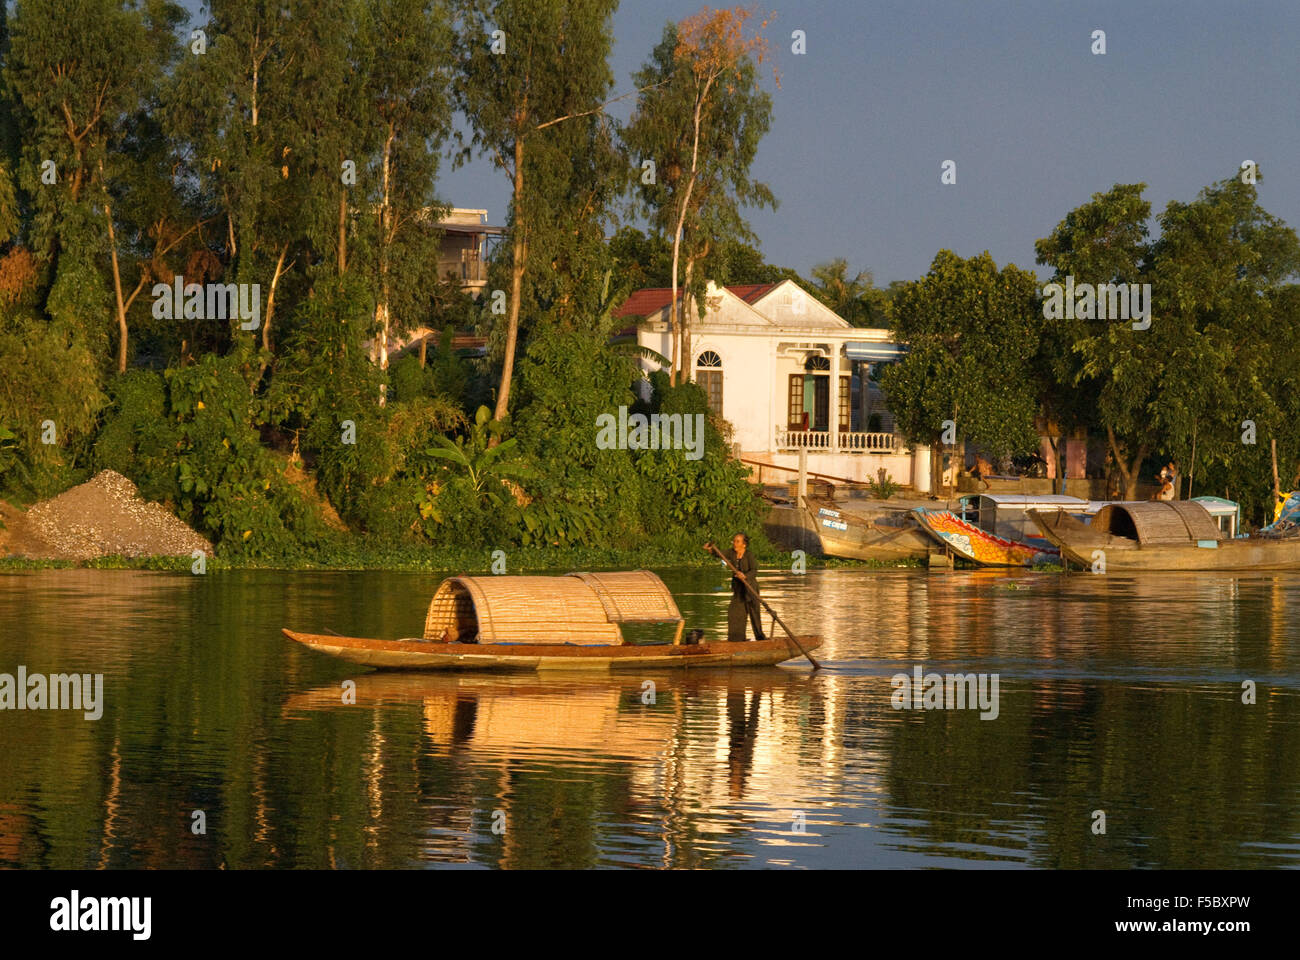 A wooden sampan makes its way up the brown waters of the Perfume River in Hue, Vietnam. - Stock Image